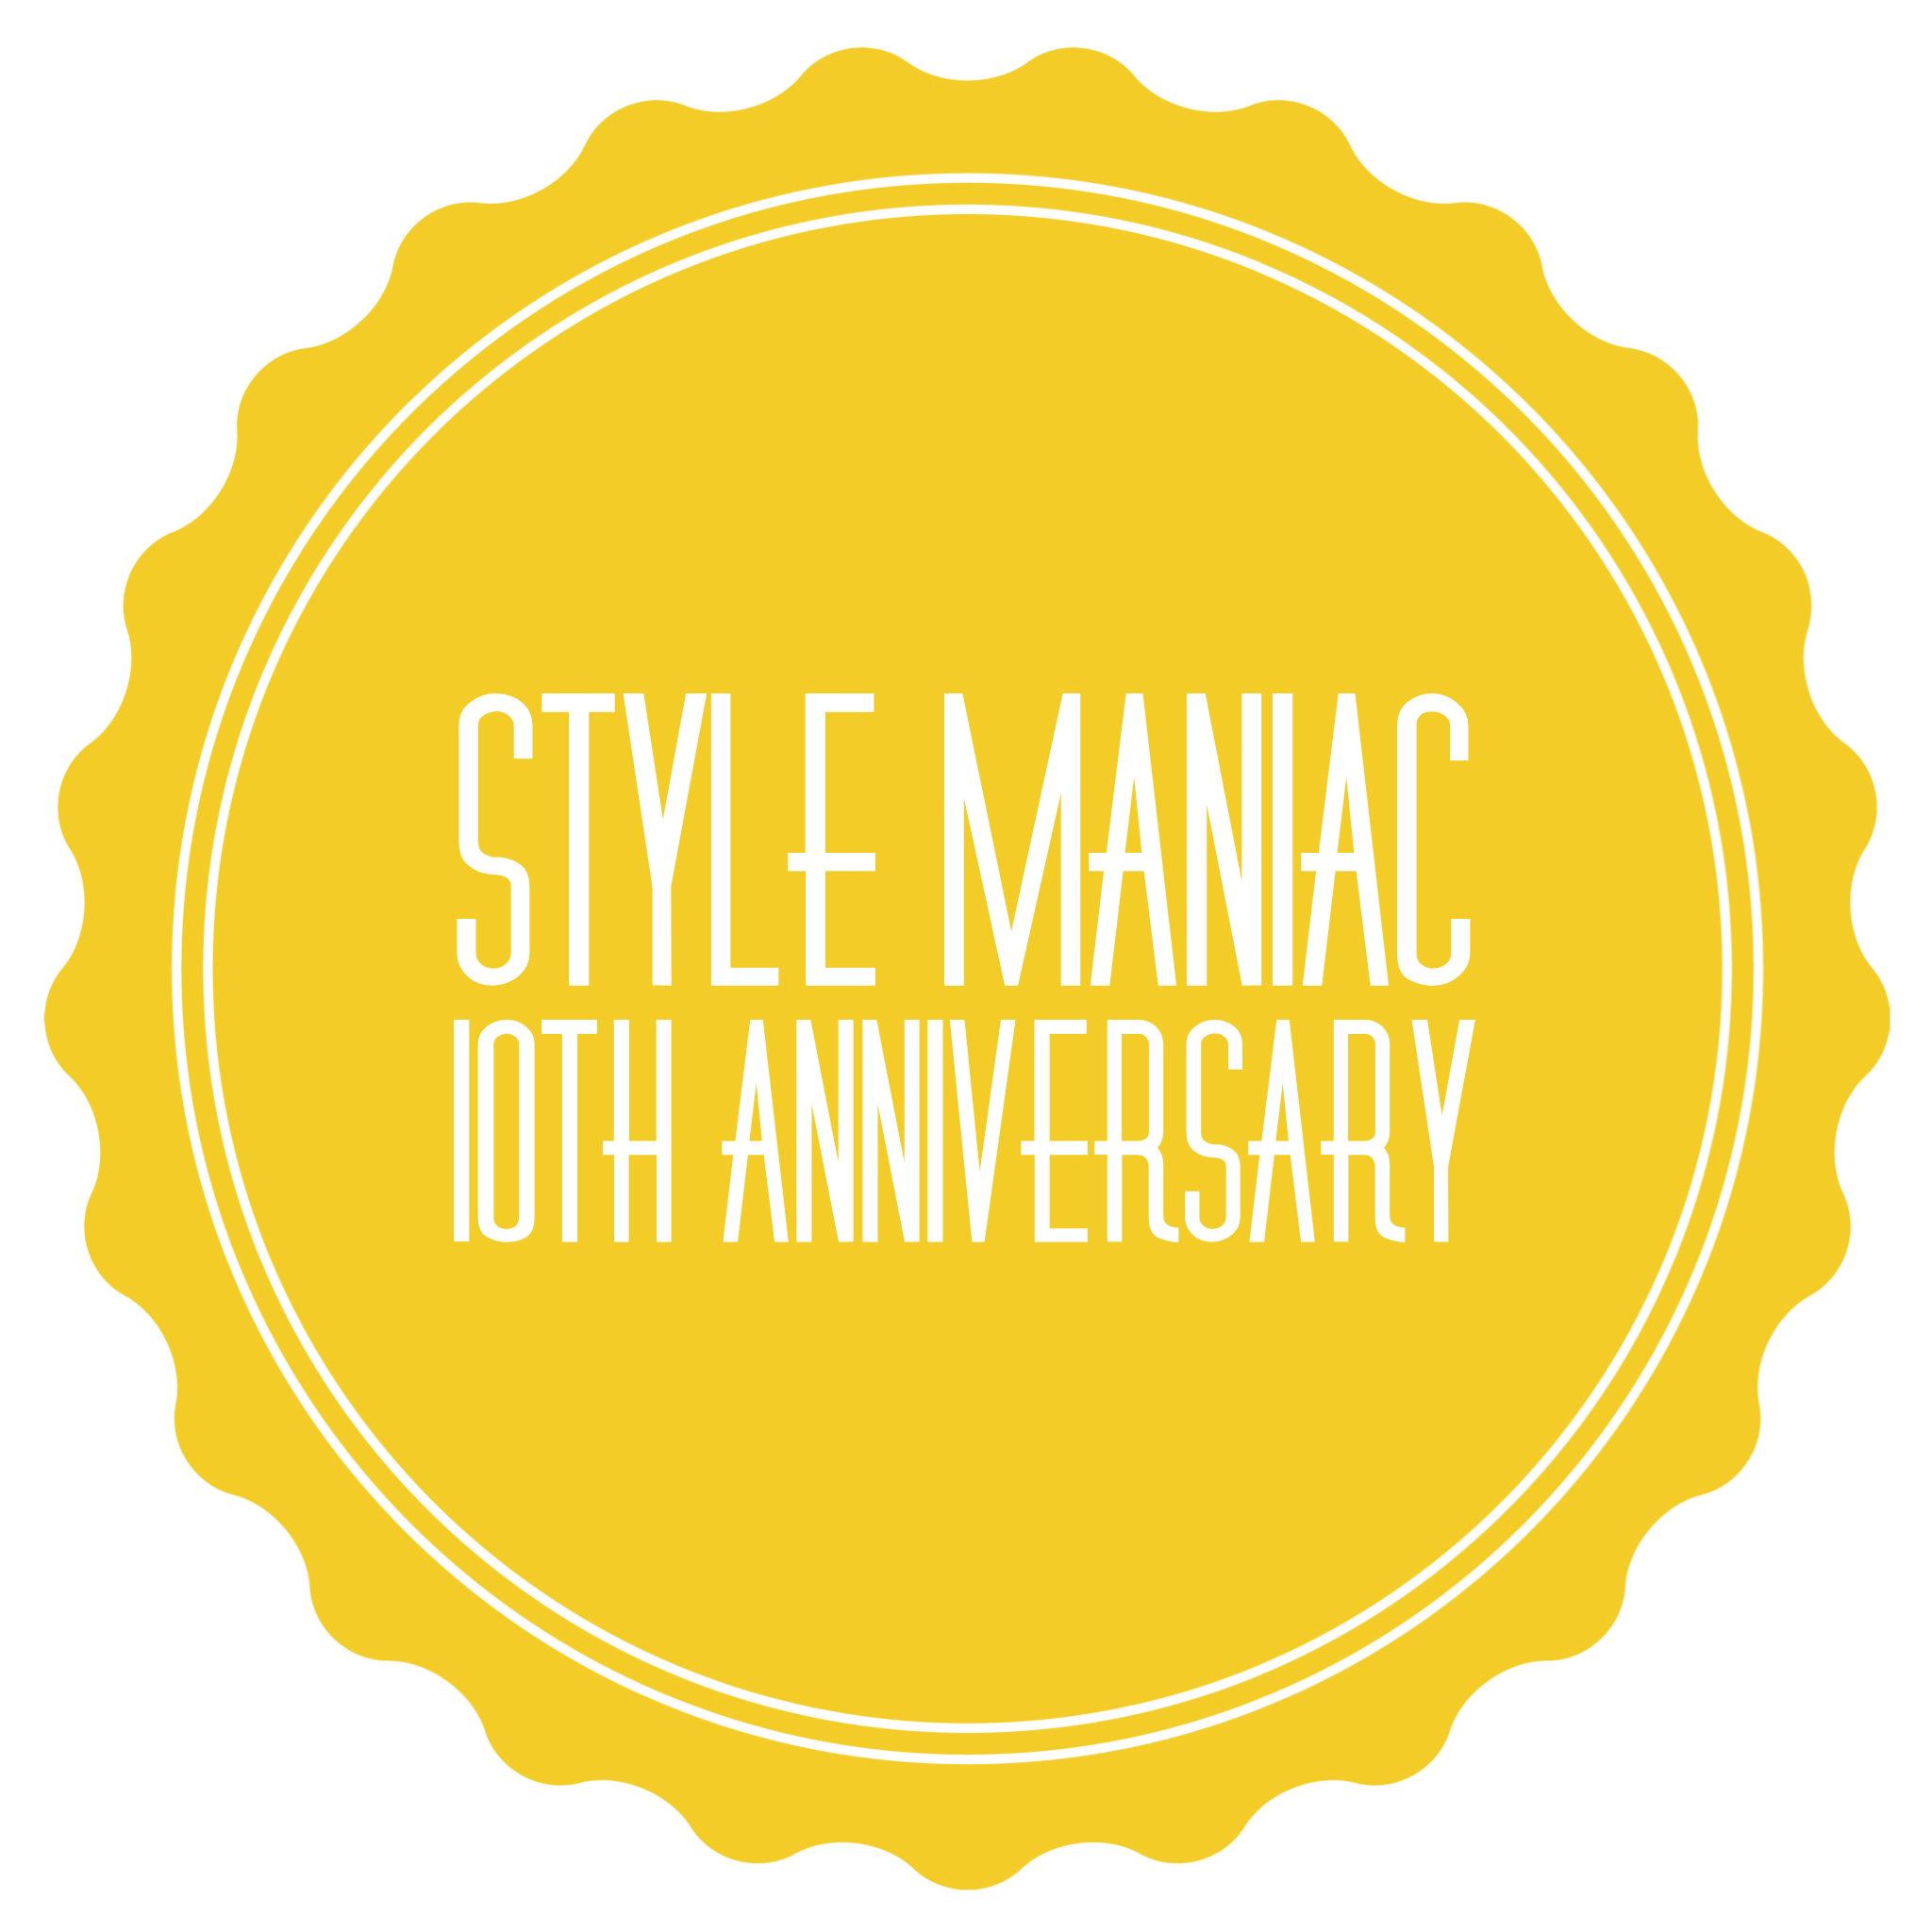 Style Maniac 10th Anniversary badge - yellow.PNG